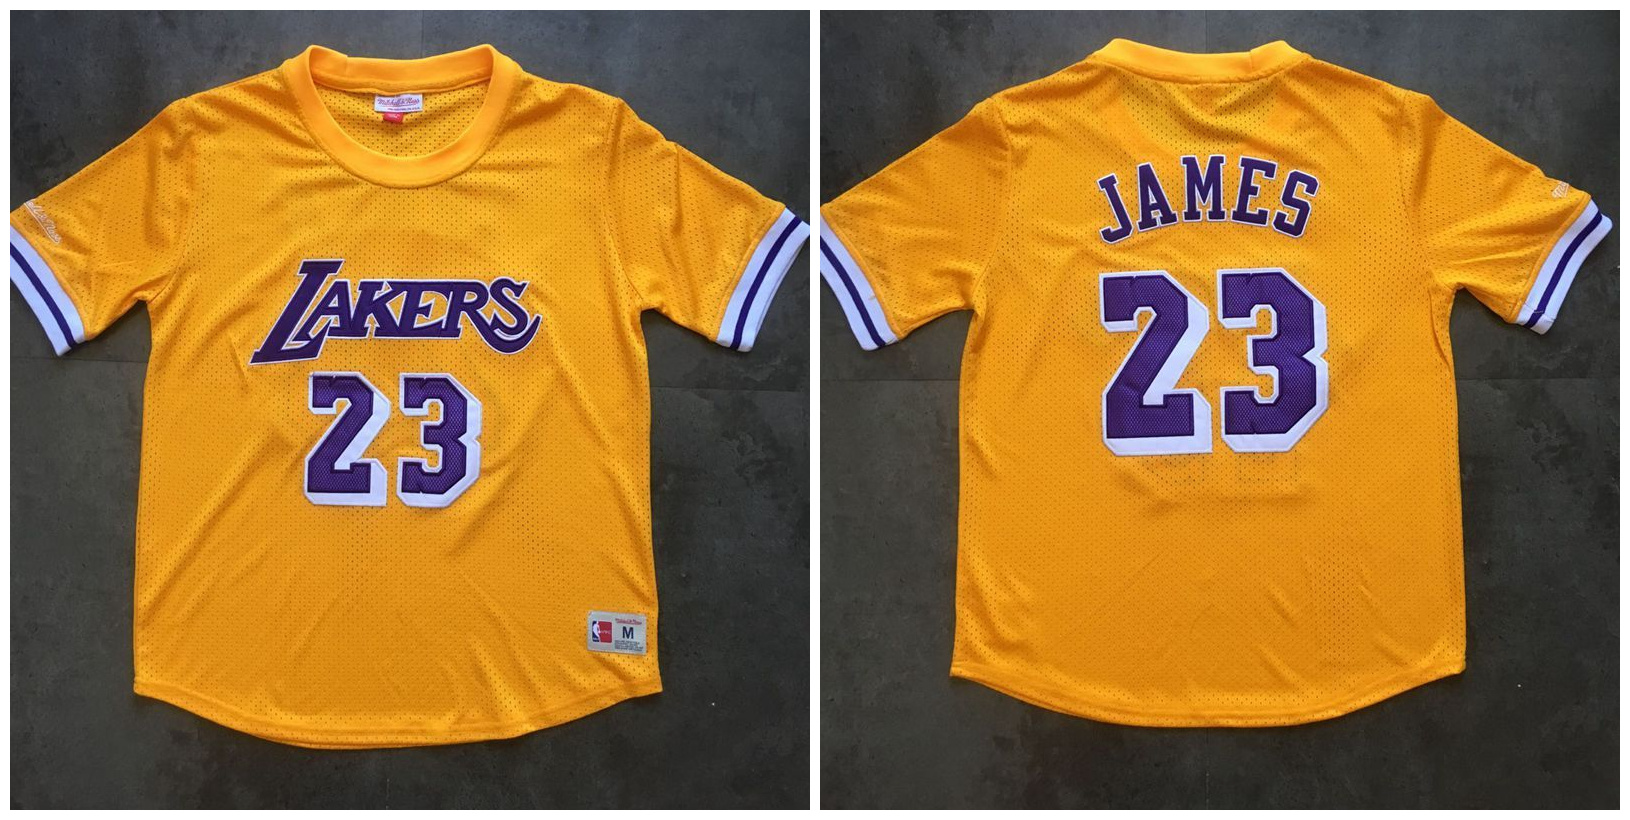 Lakers 23 Lebron James Yellow Short Sleeve Mitchell & Ness Jersey